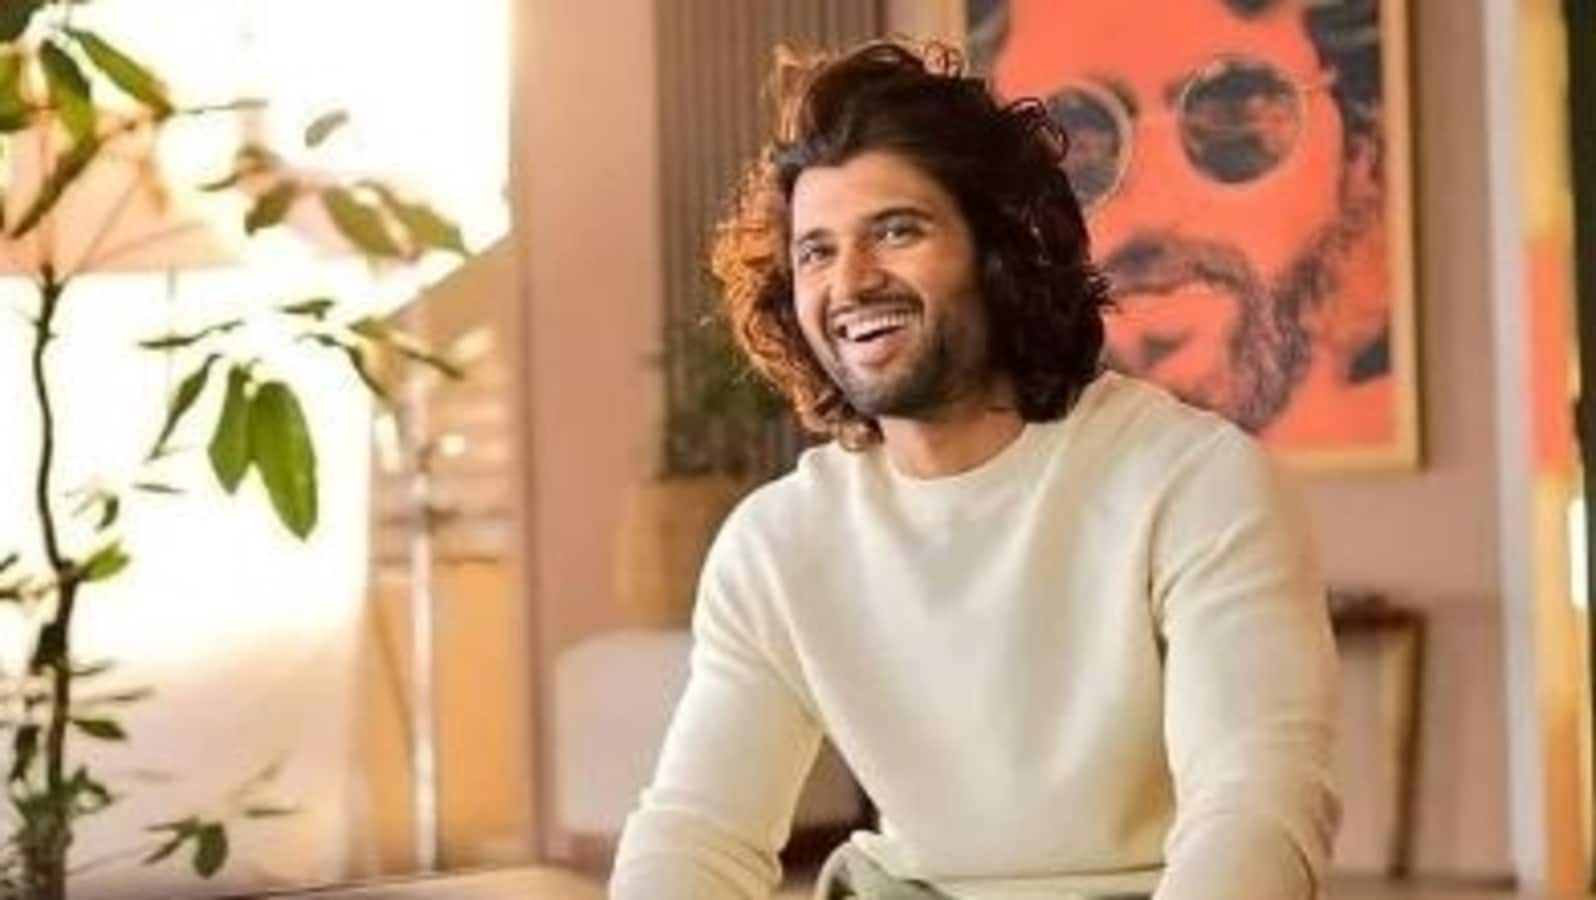 Did you know Vijay Deverakonda wanted to become a singer? More interesting  facts about the Arjun Reddy star - Hindustan Times